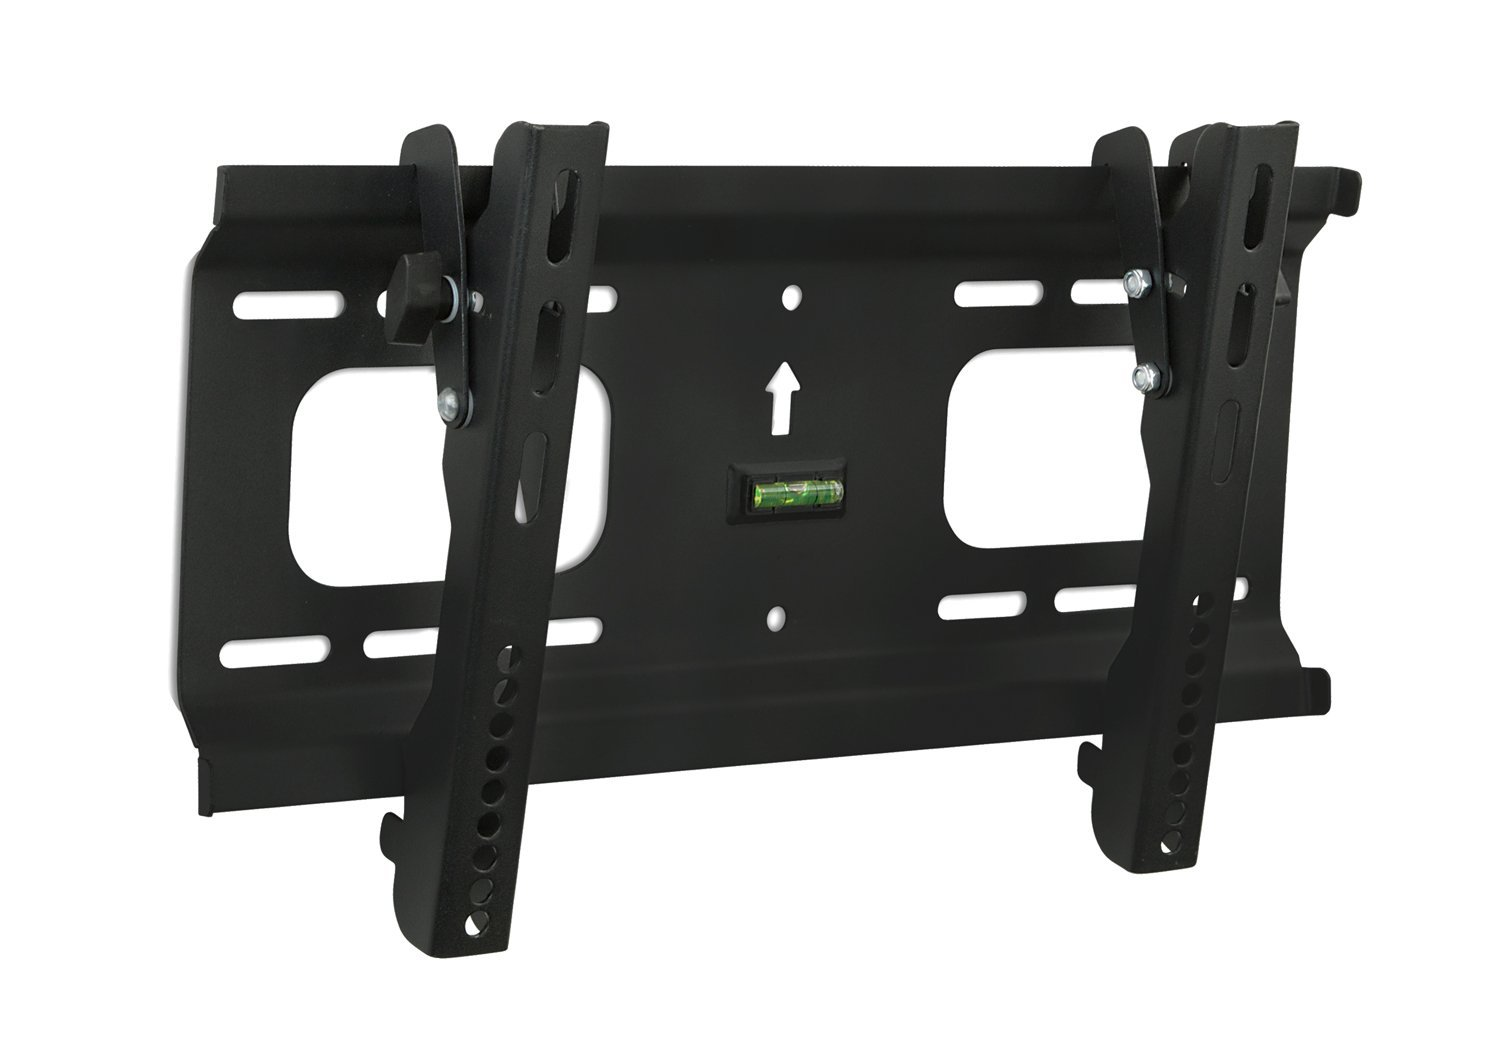 Mount-It! Tilting TV Wall Mount Bracket Low-Profile Design for 32 to Cheap 55 Inch Tv Sale, find Sale deals on line at Alibaba.com